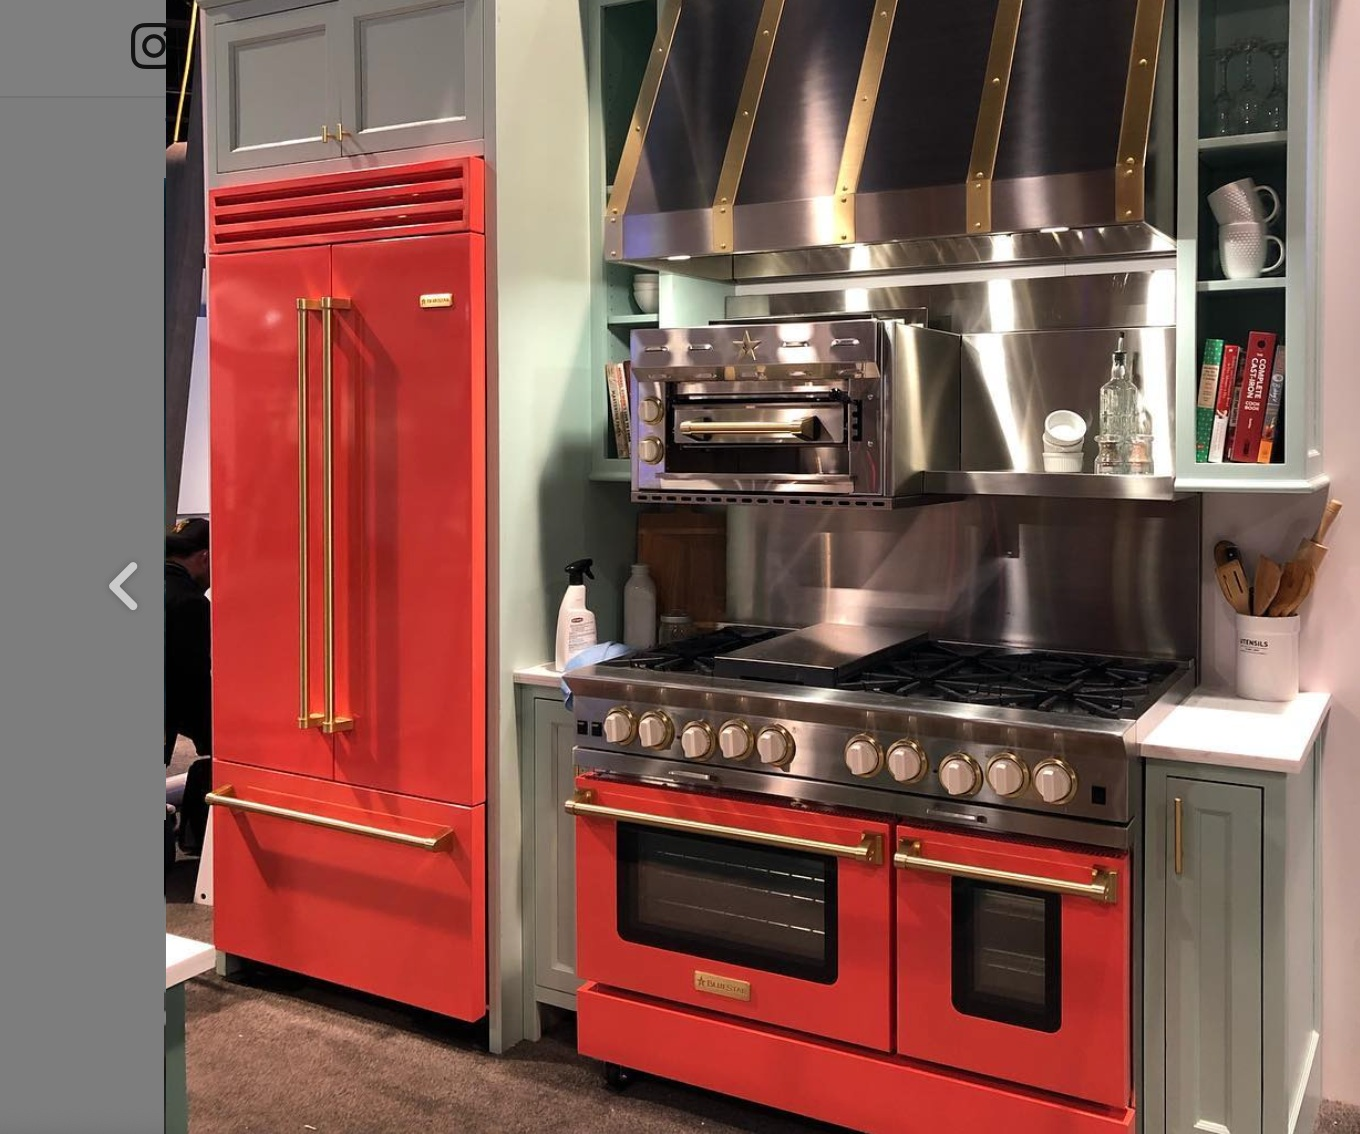 Fire engine red appliances from   Bluestar at KBIS